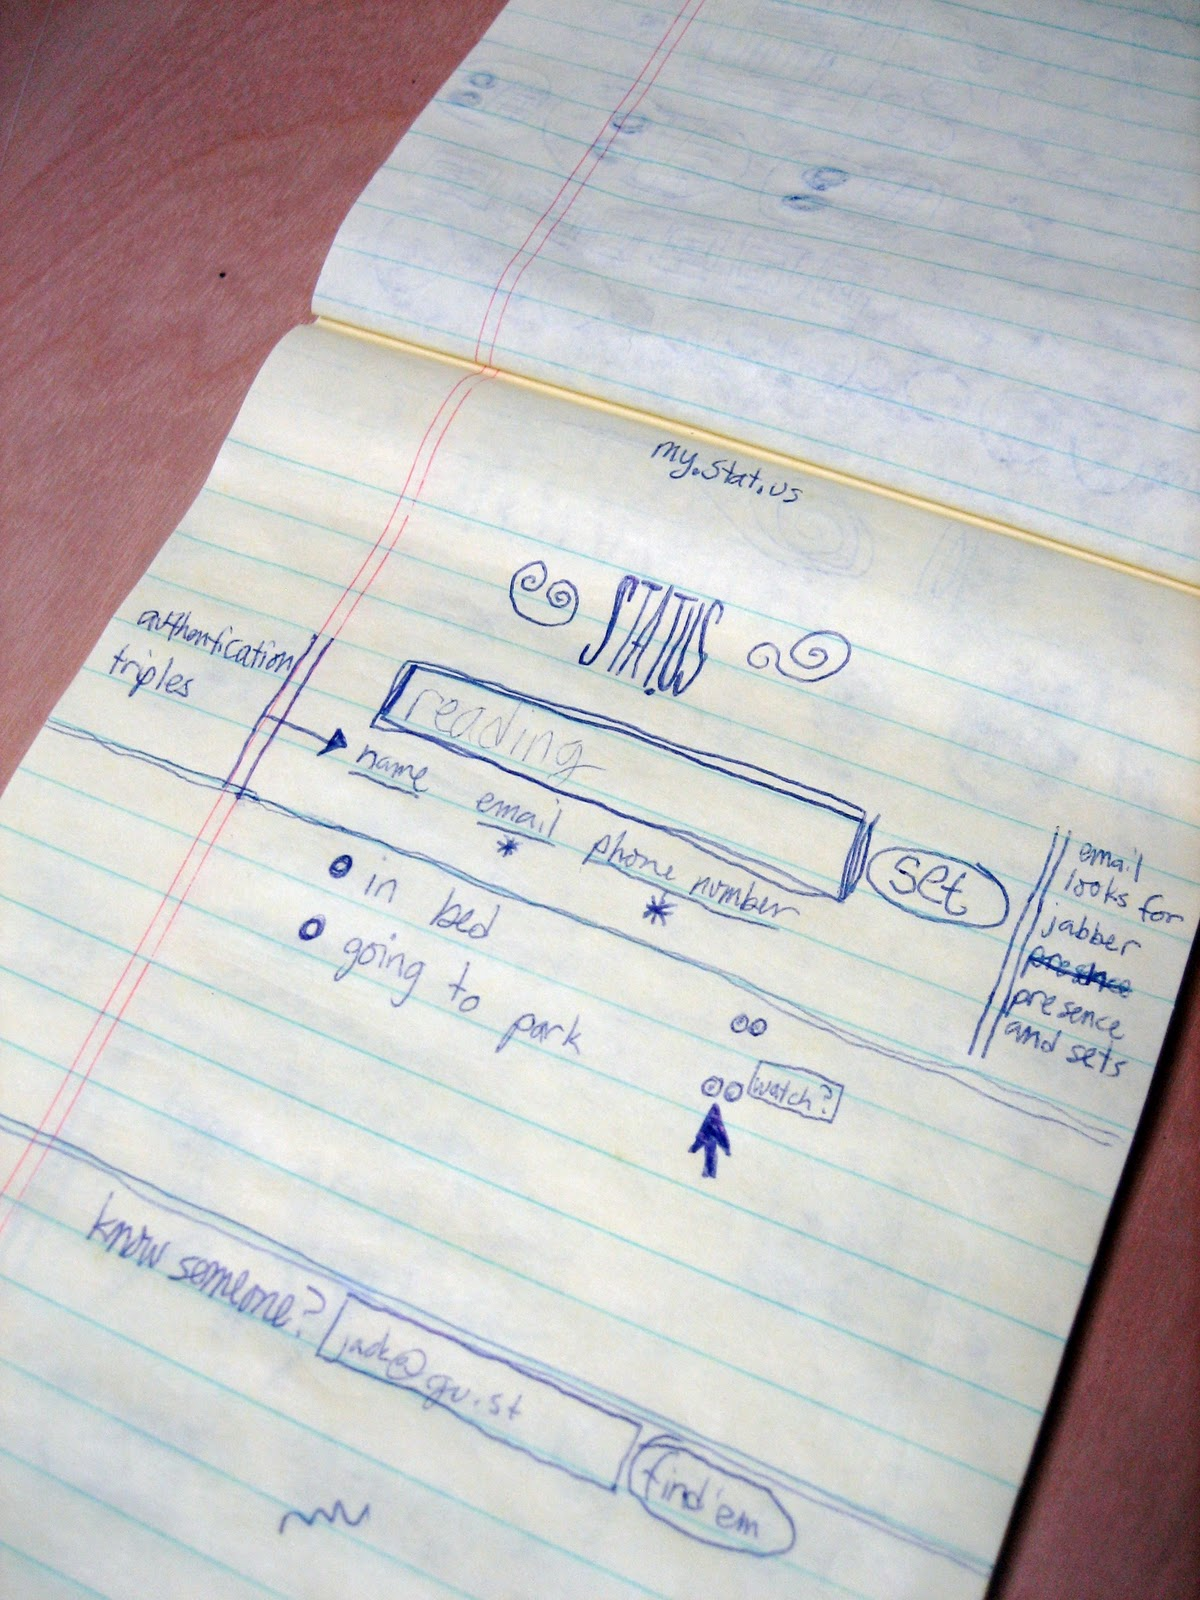 Adventures in web 20 november 2010 blueprint sketch by twitter founder jack dorsey co wikimedia commons malvernweather Images